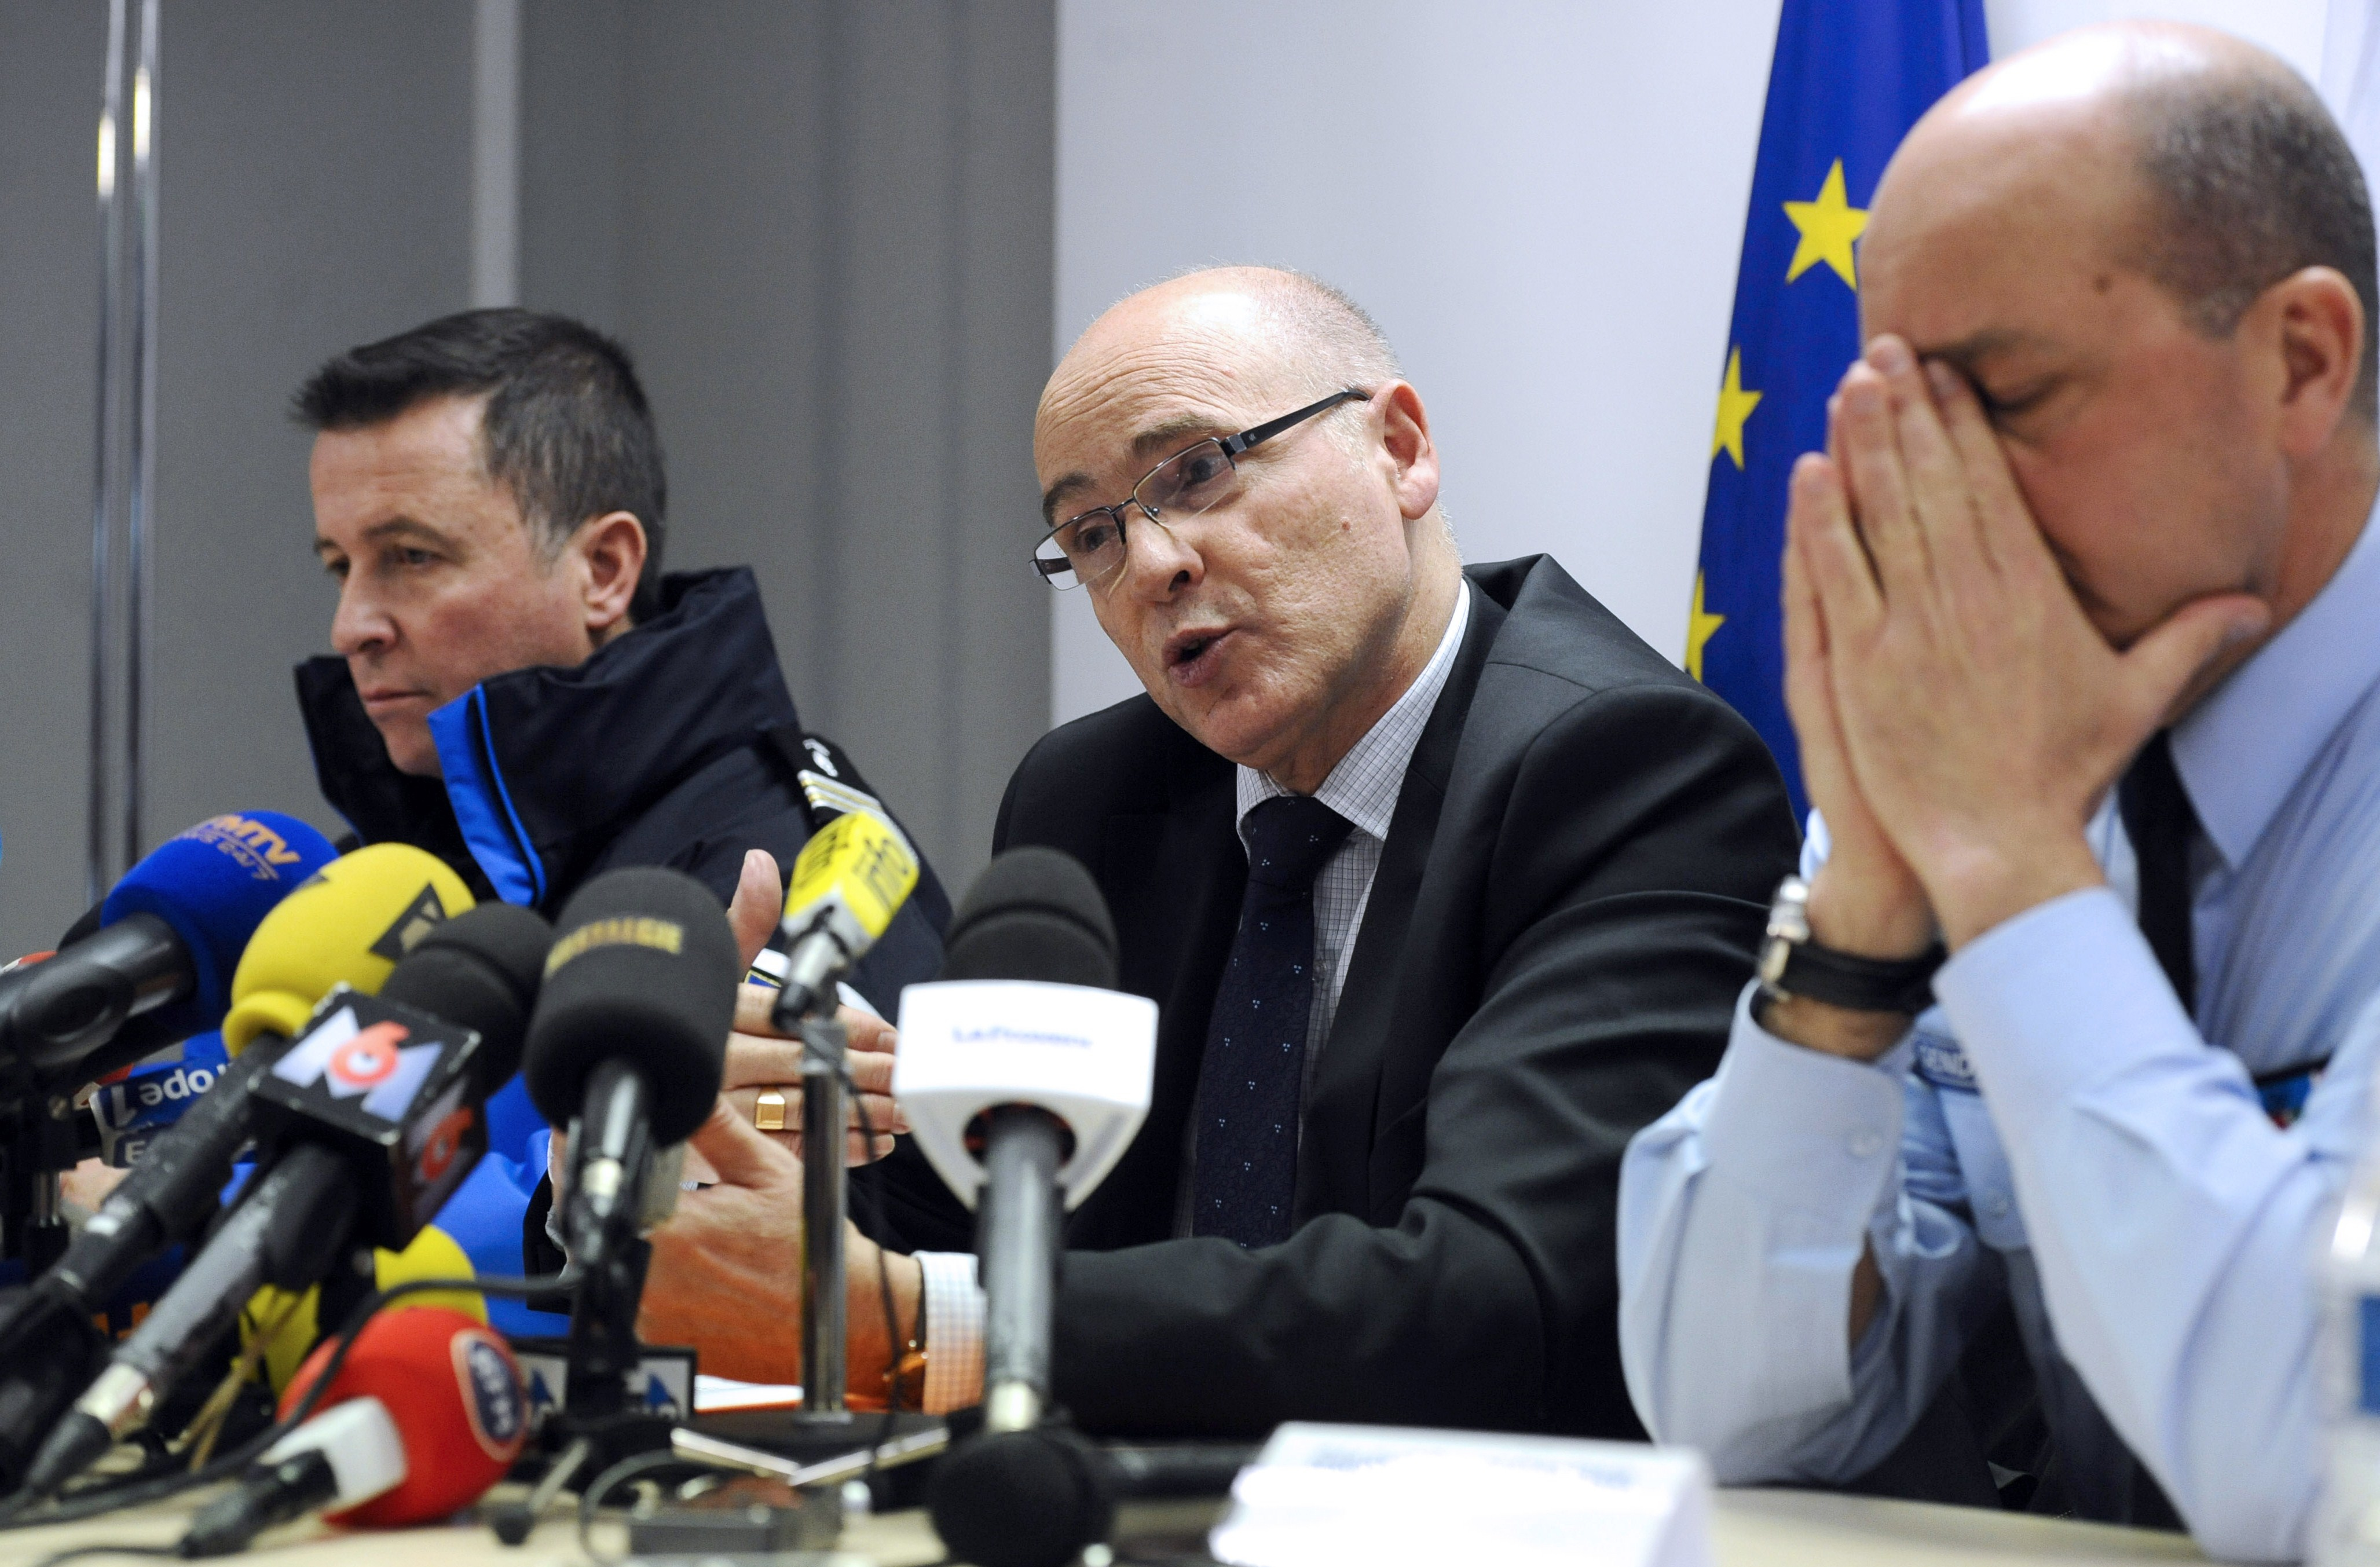 French prosecutor of Marseille Brice Robin (C), flanked by General David Galtier (R), speaks to the press on March 26, 2015 in Marignane airport near the French southern city of Marseille.  (Getty)